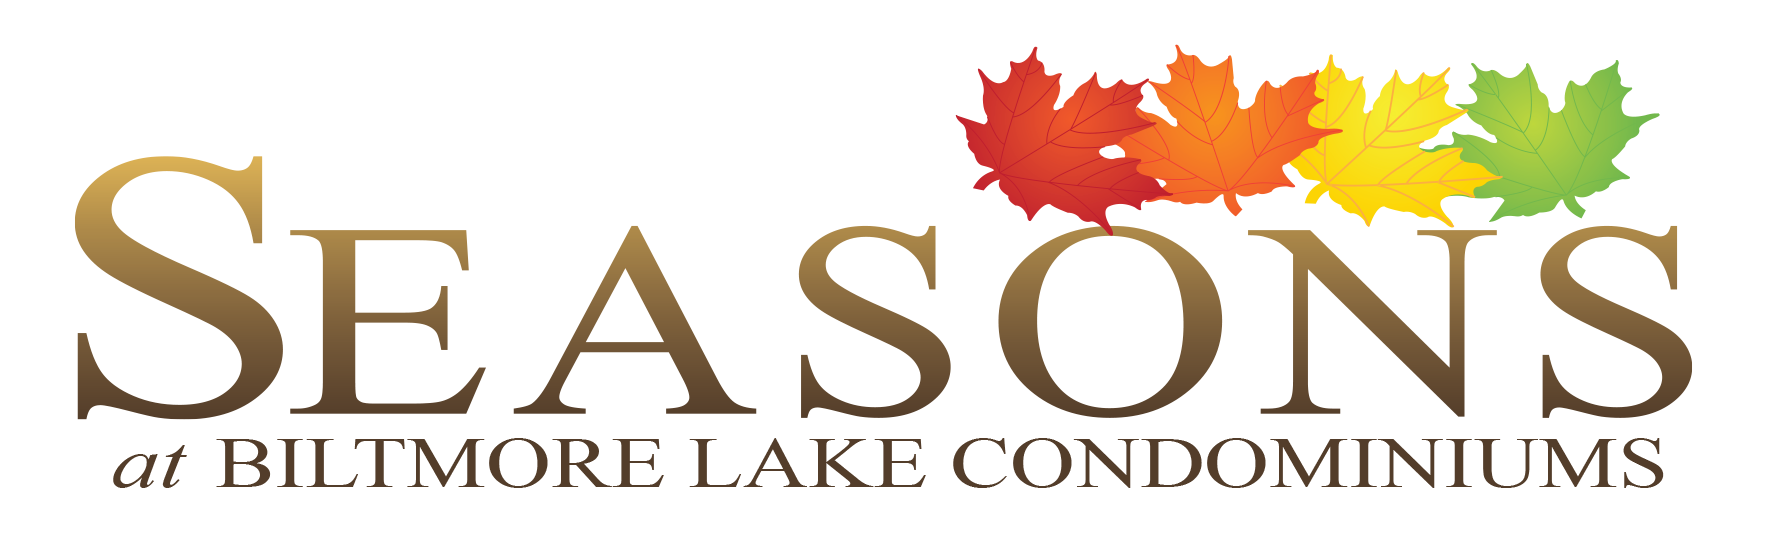 Seasons at Biltmore Lake logo